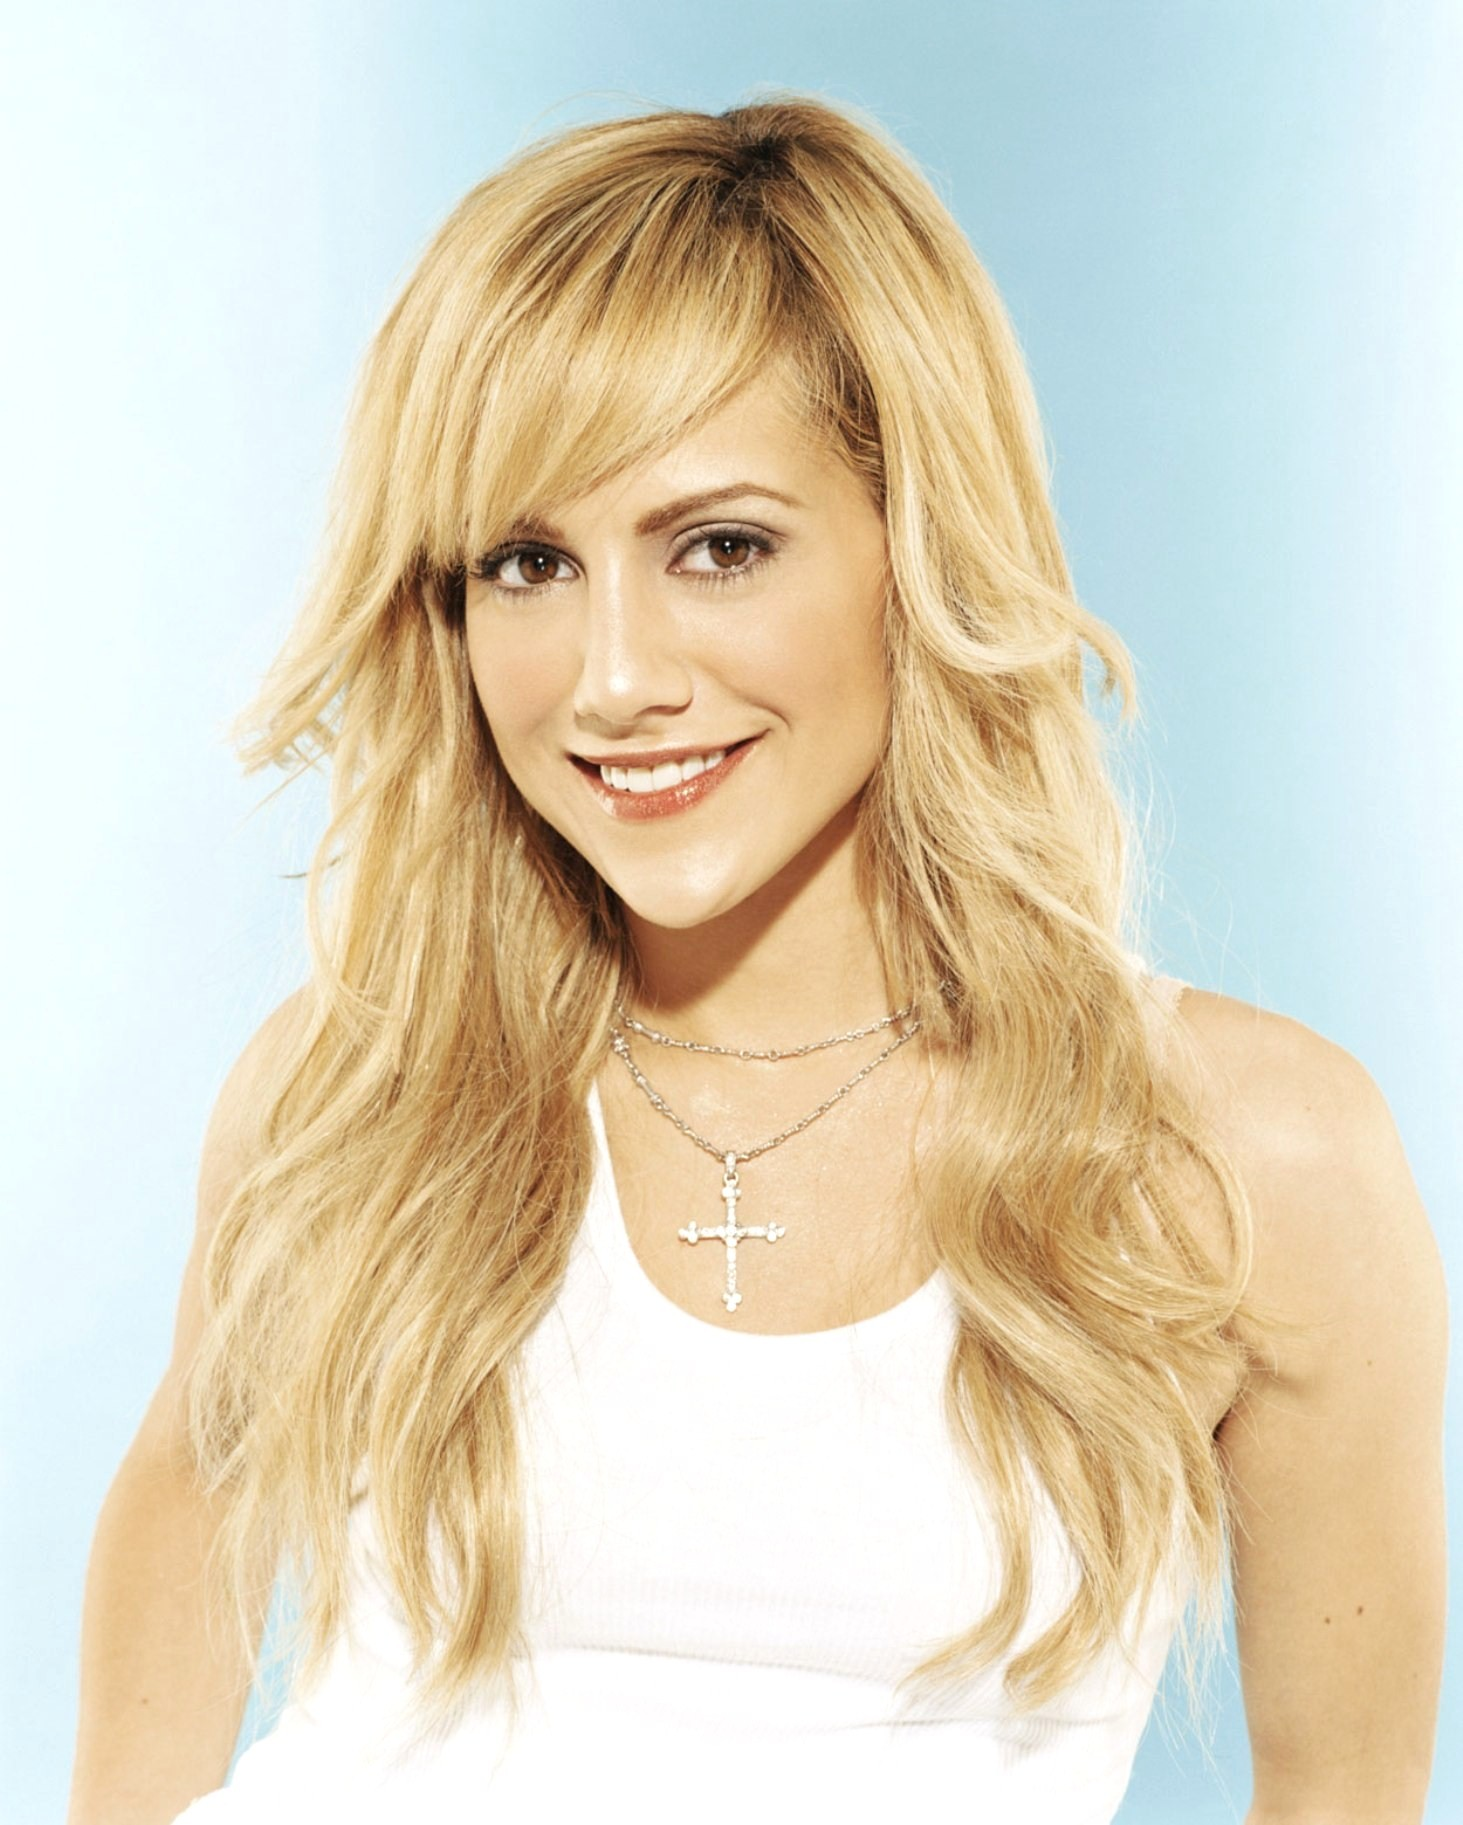 Remembering Brittany Murphy on her birthday, 2019